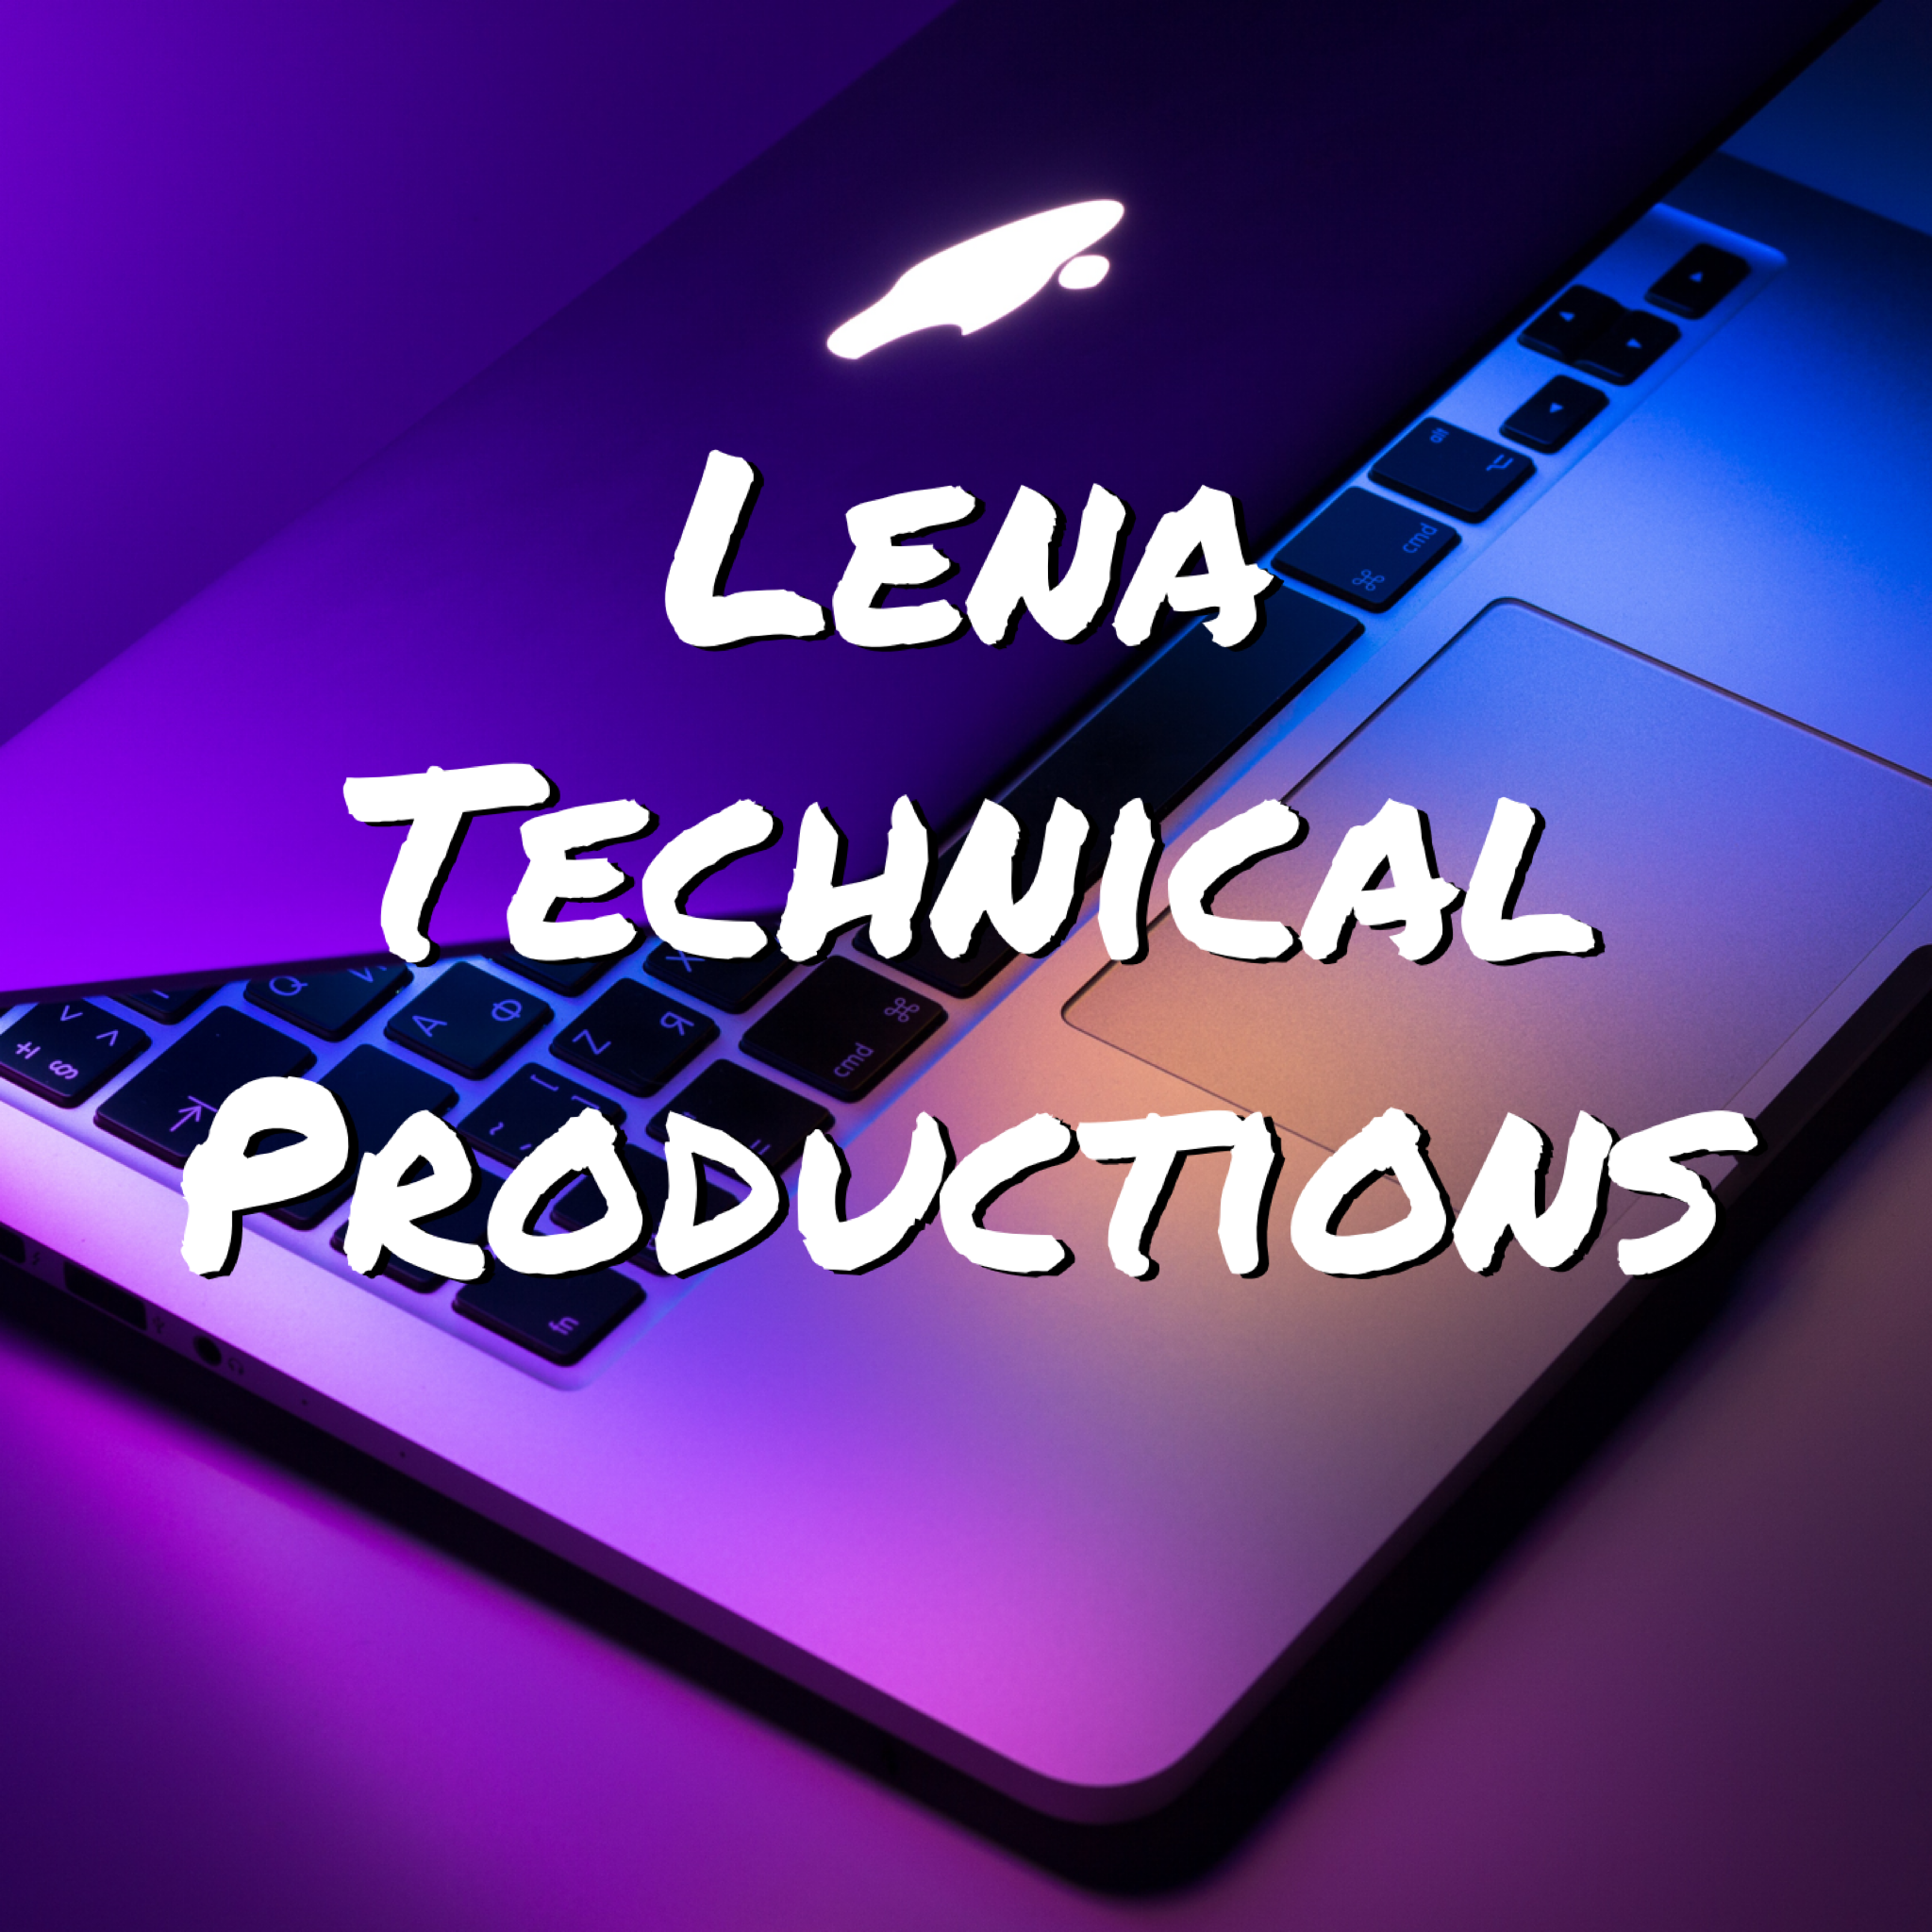 Lena Technical Productions